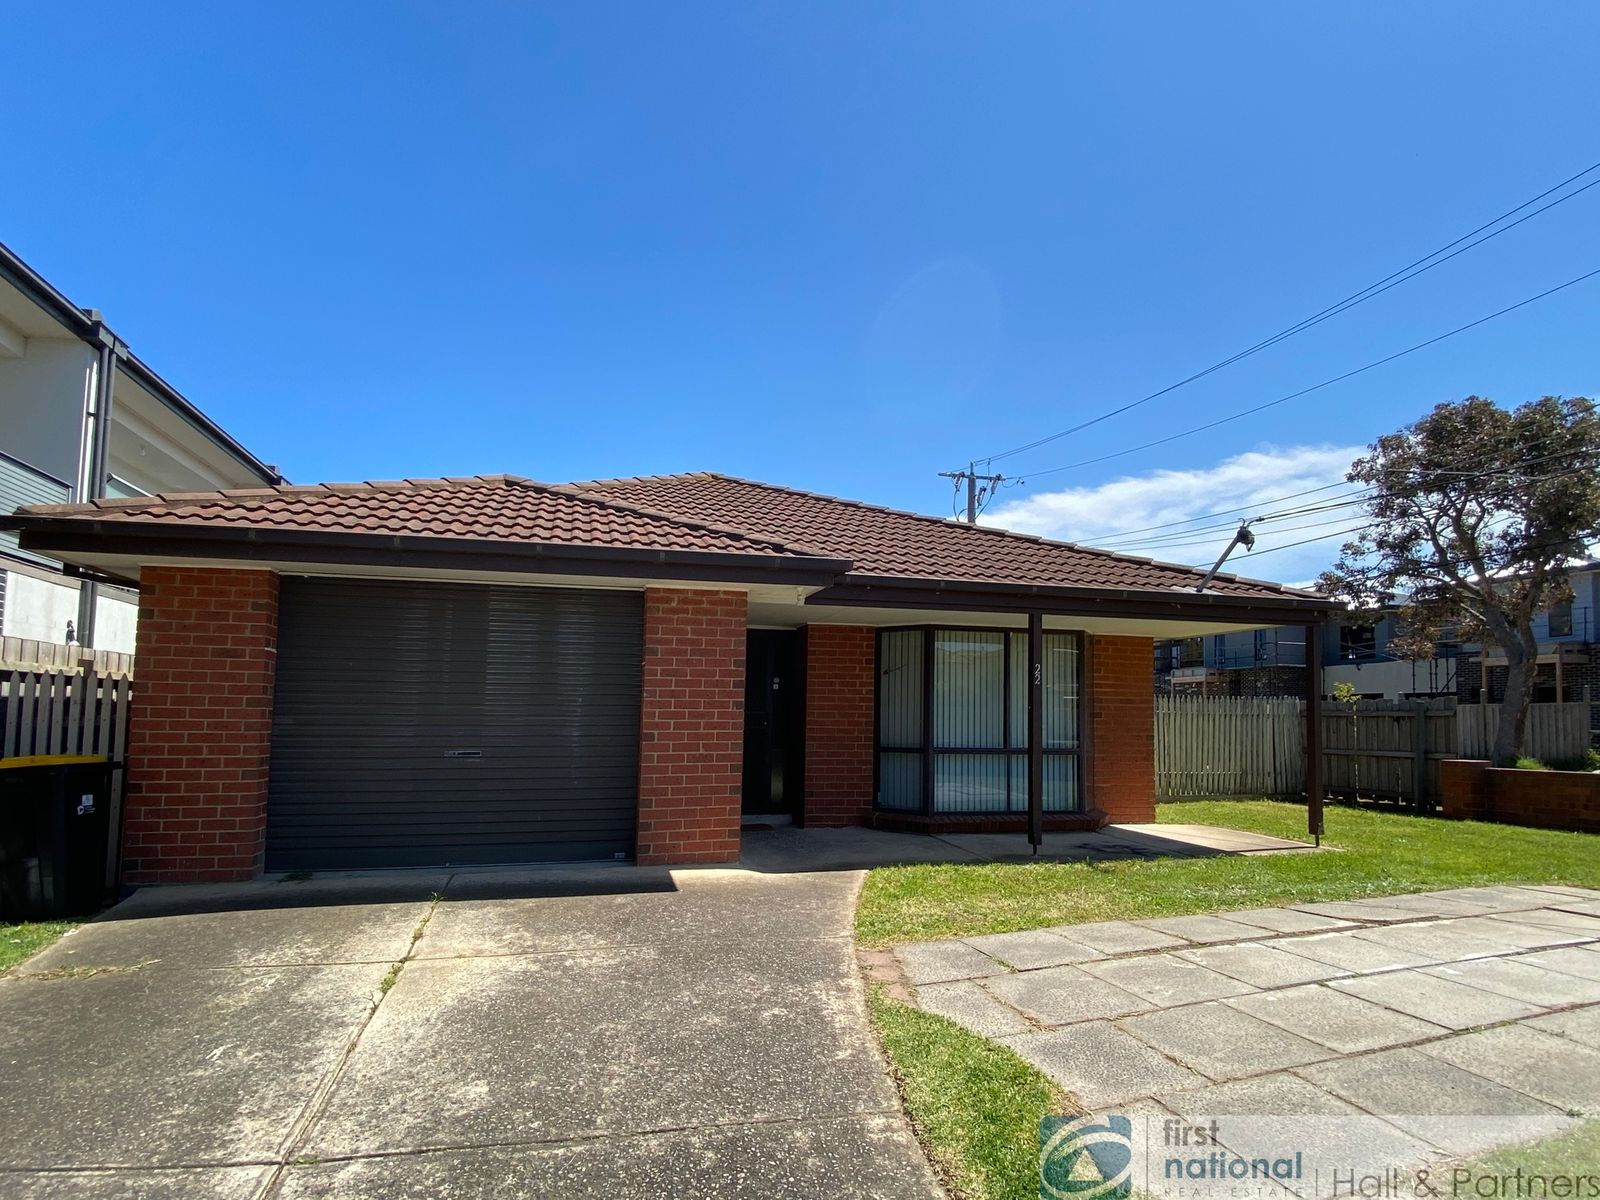 22 View Road, Springvale, VIC 3171